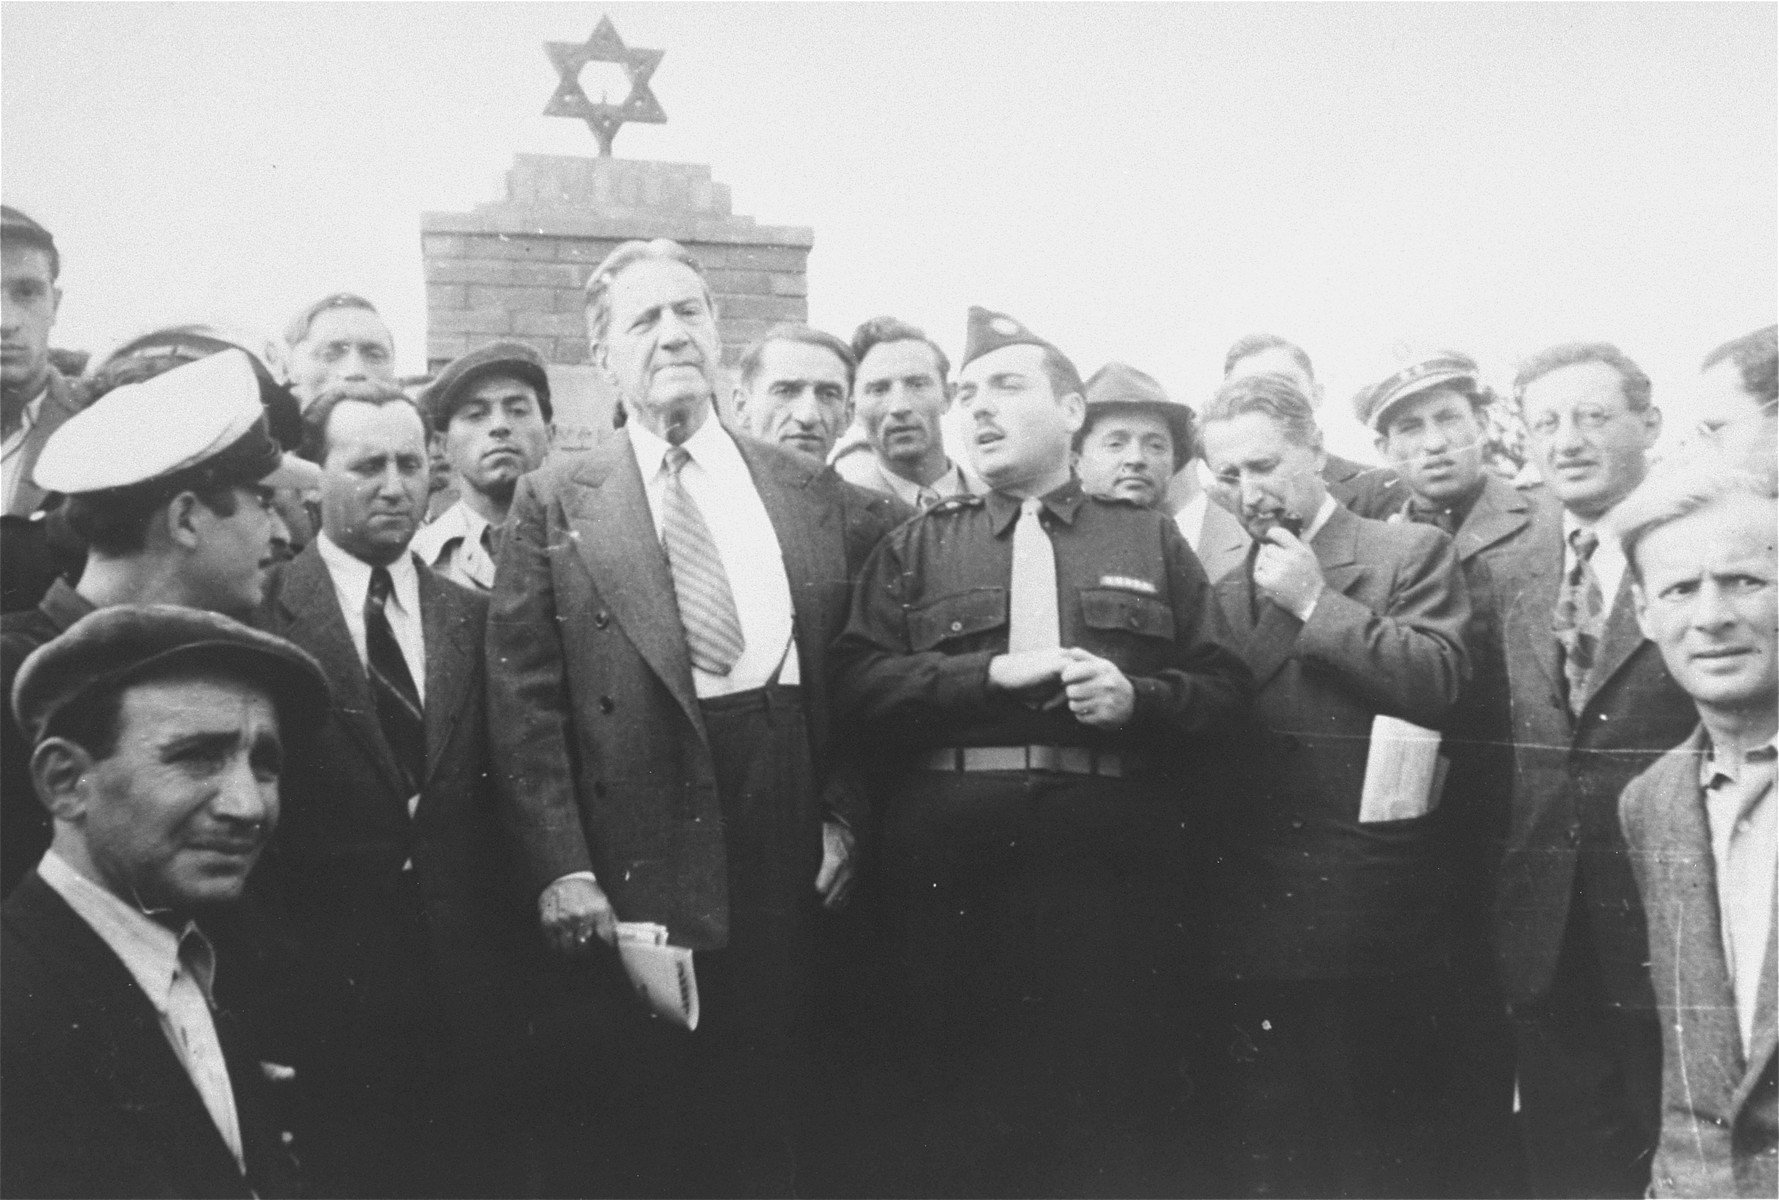 Rabbi Stephen Wise visits the Zeilsheim displaced persons camp.